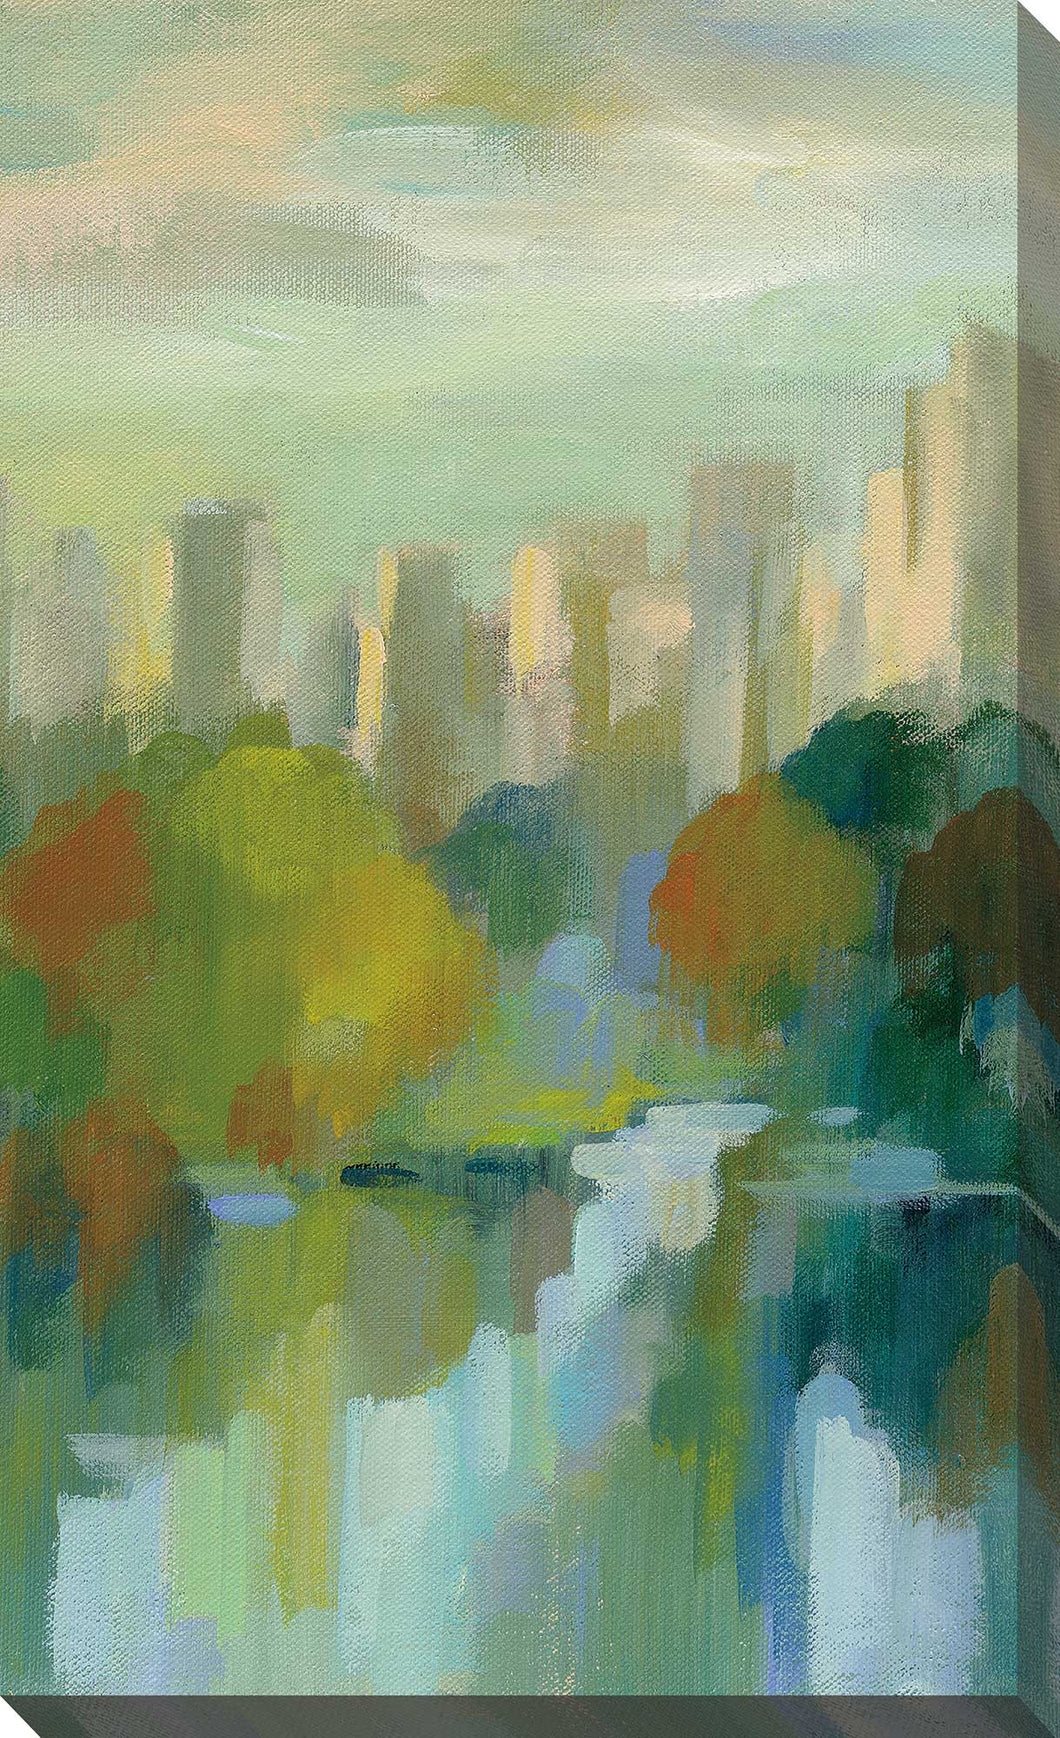 Manhattan Sketches IV V by Silvia Vassileva Print on Canvas Cityscapes,Green art,Portrait Shape,All Canvas Art,Silvia Vassileva